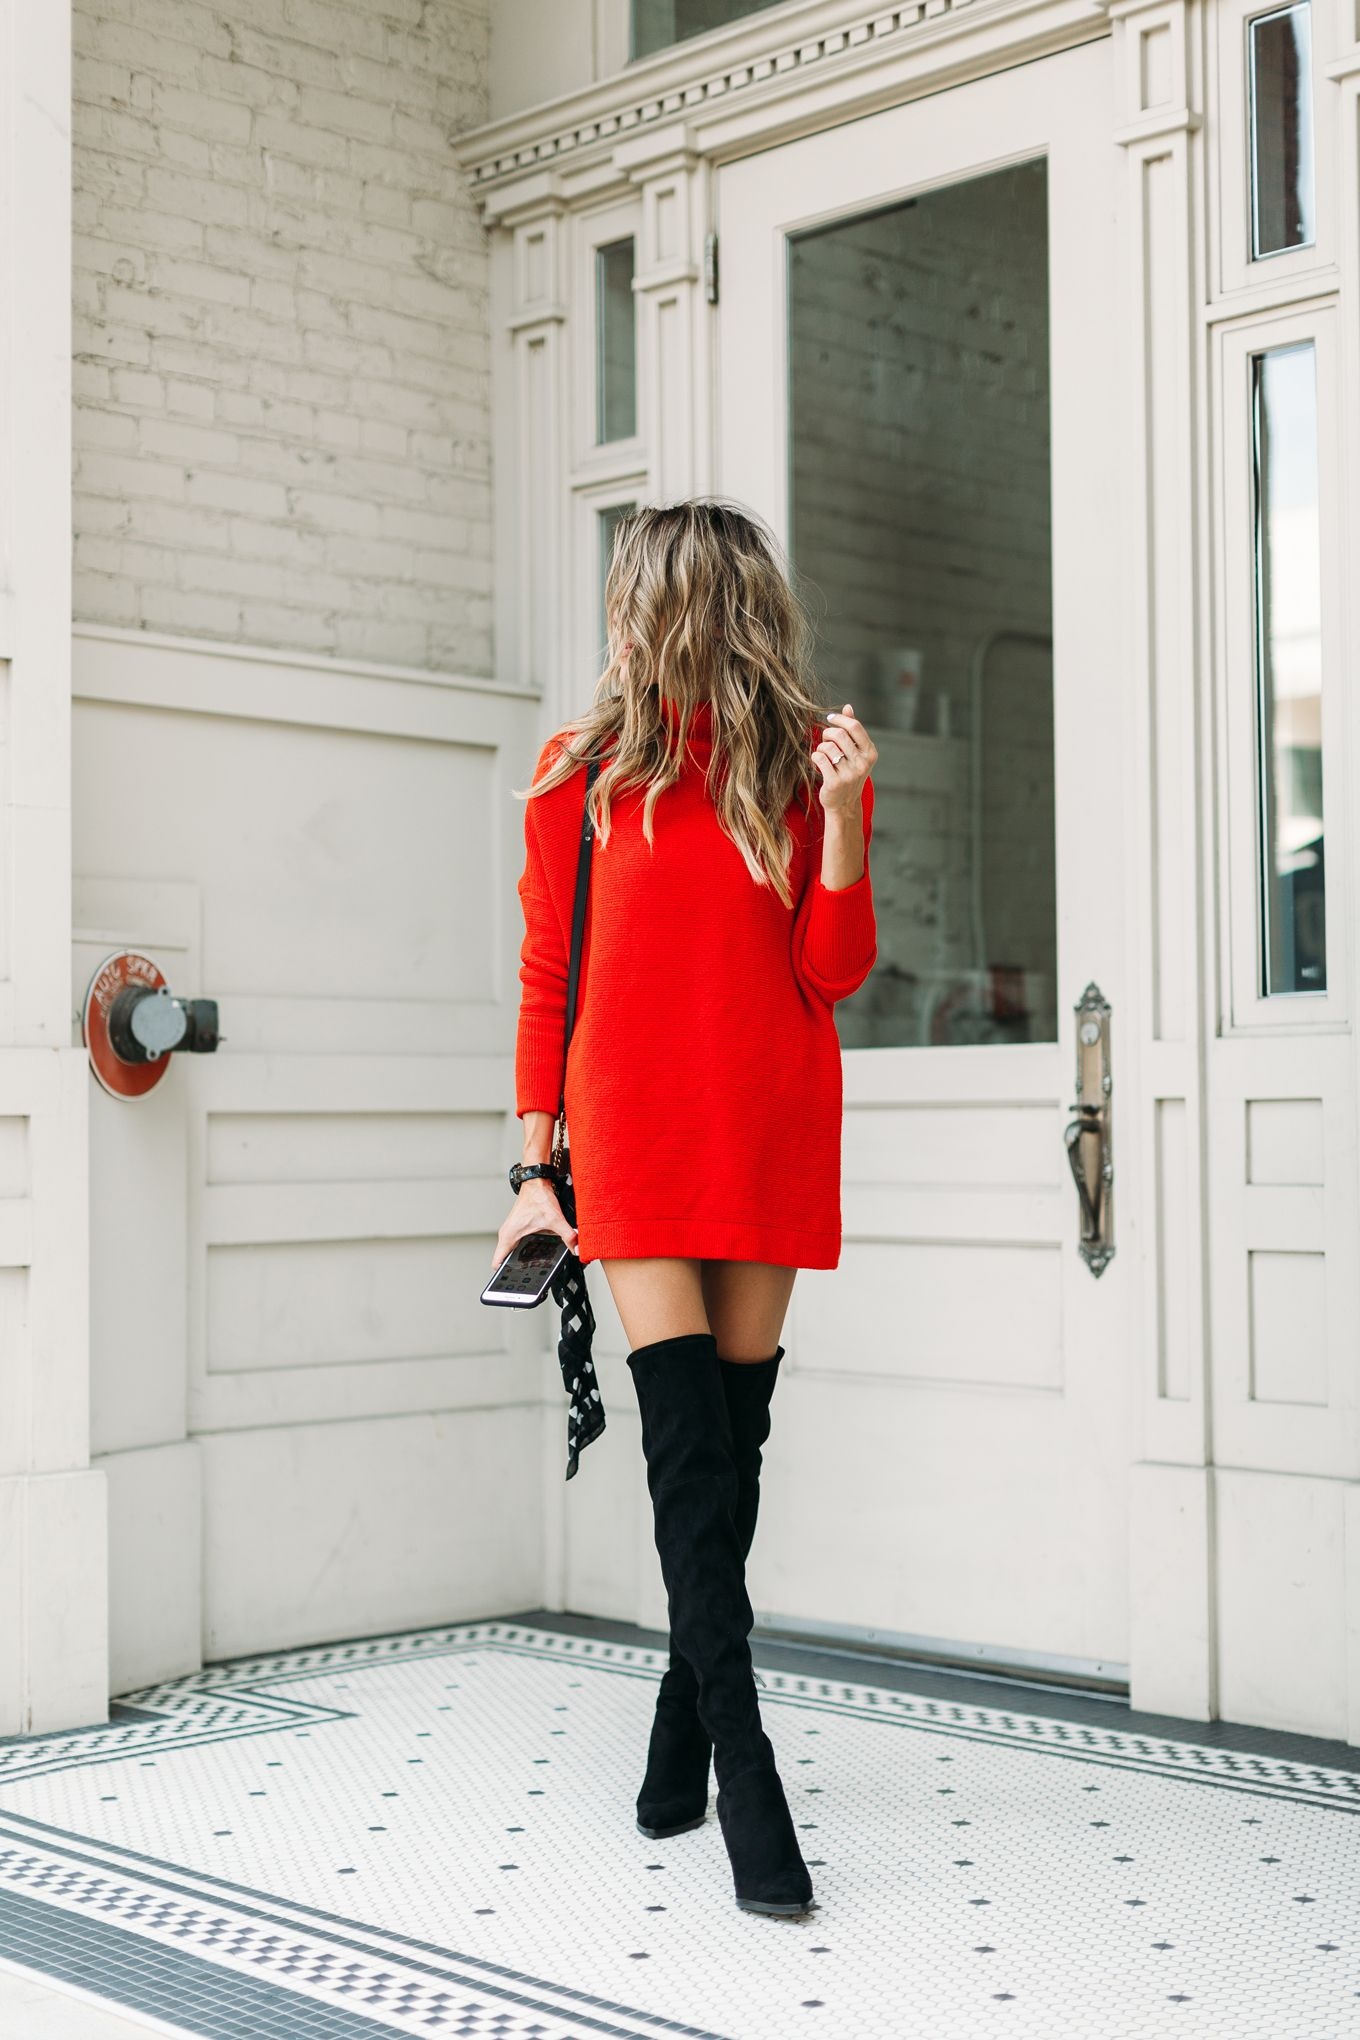 Little Red Dress with Little Black Boots 7af44addff12